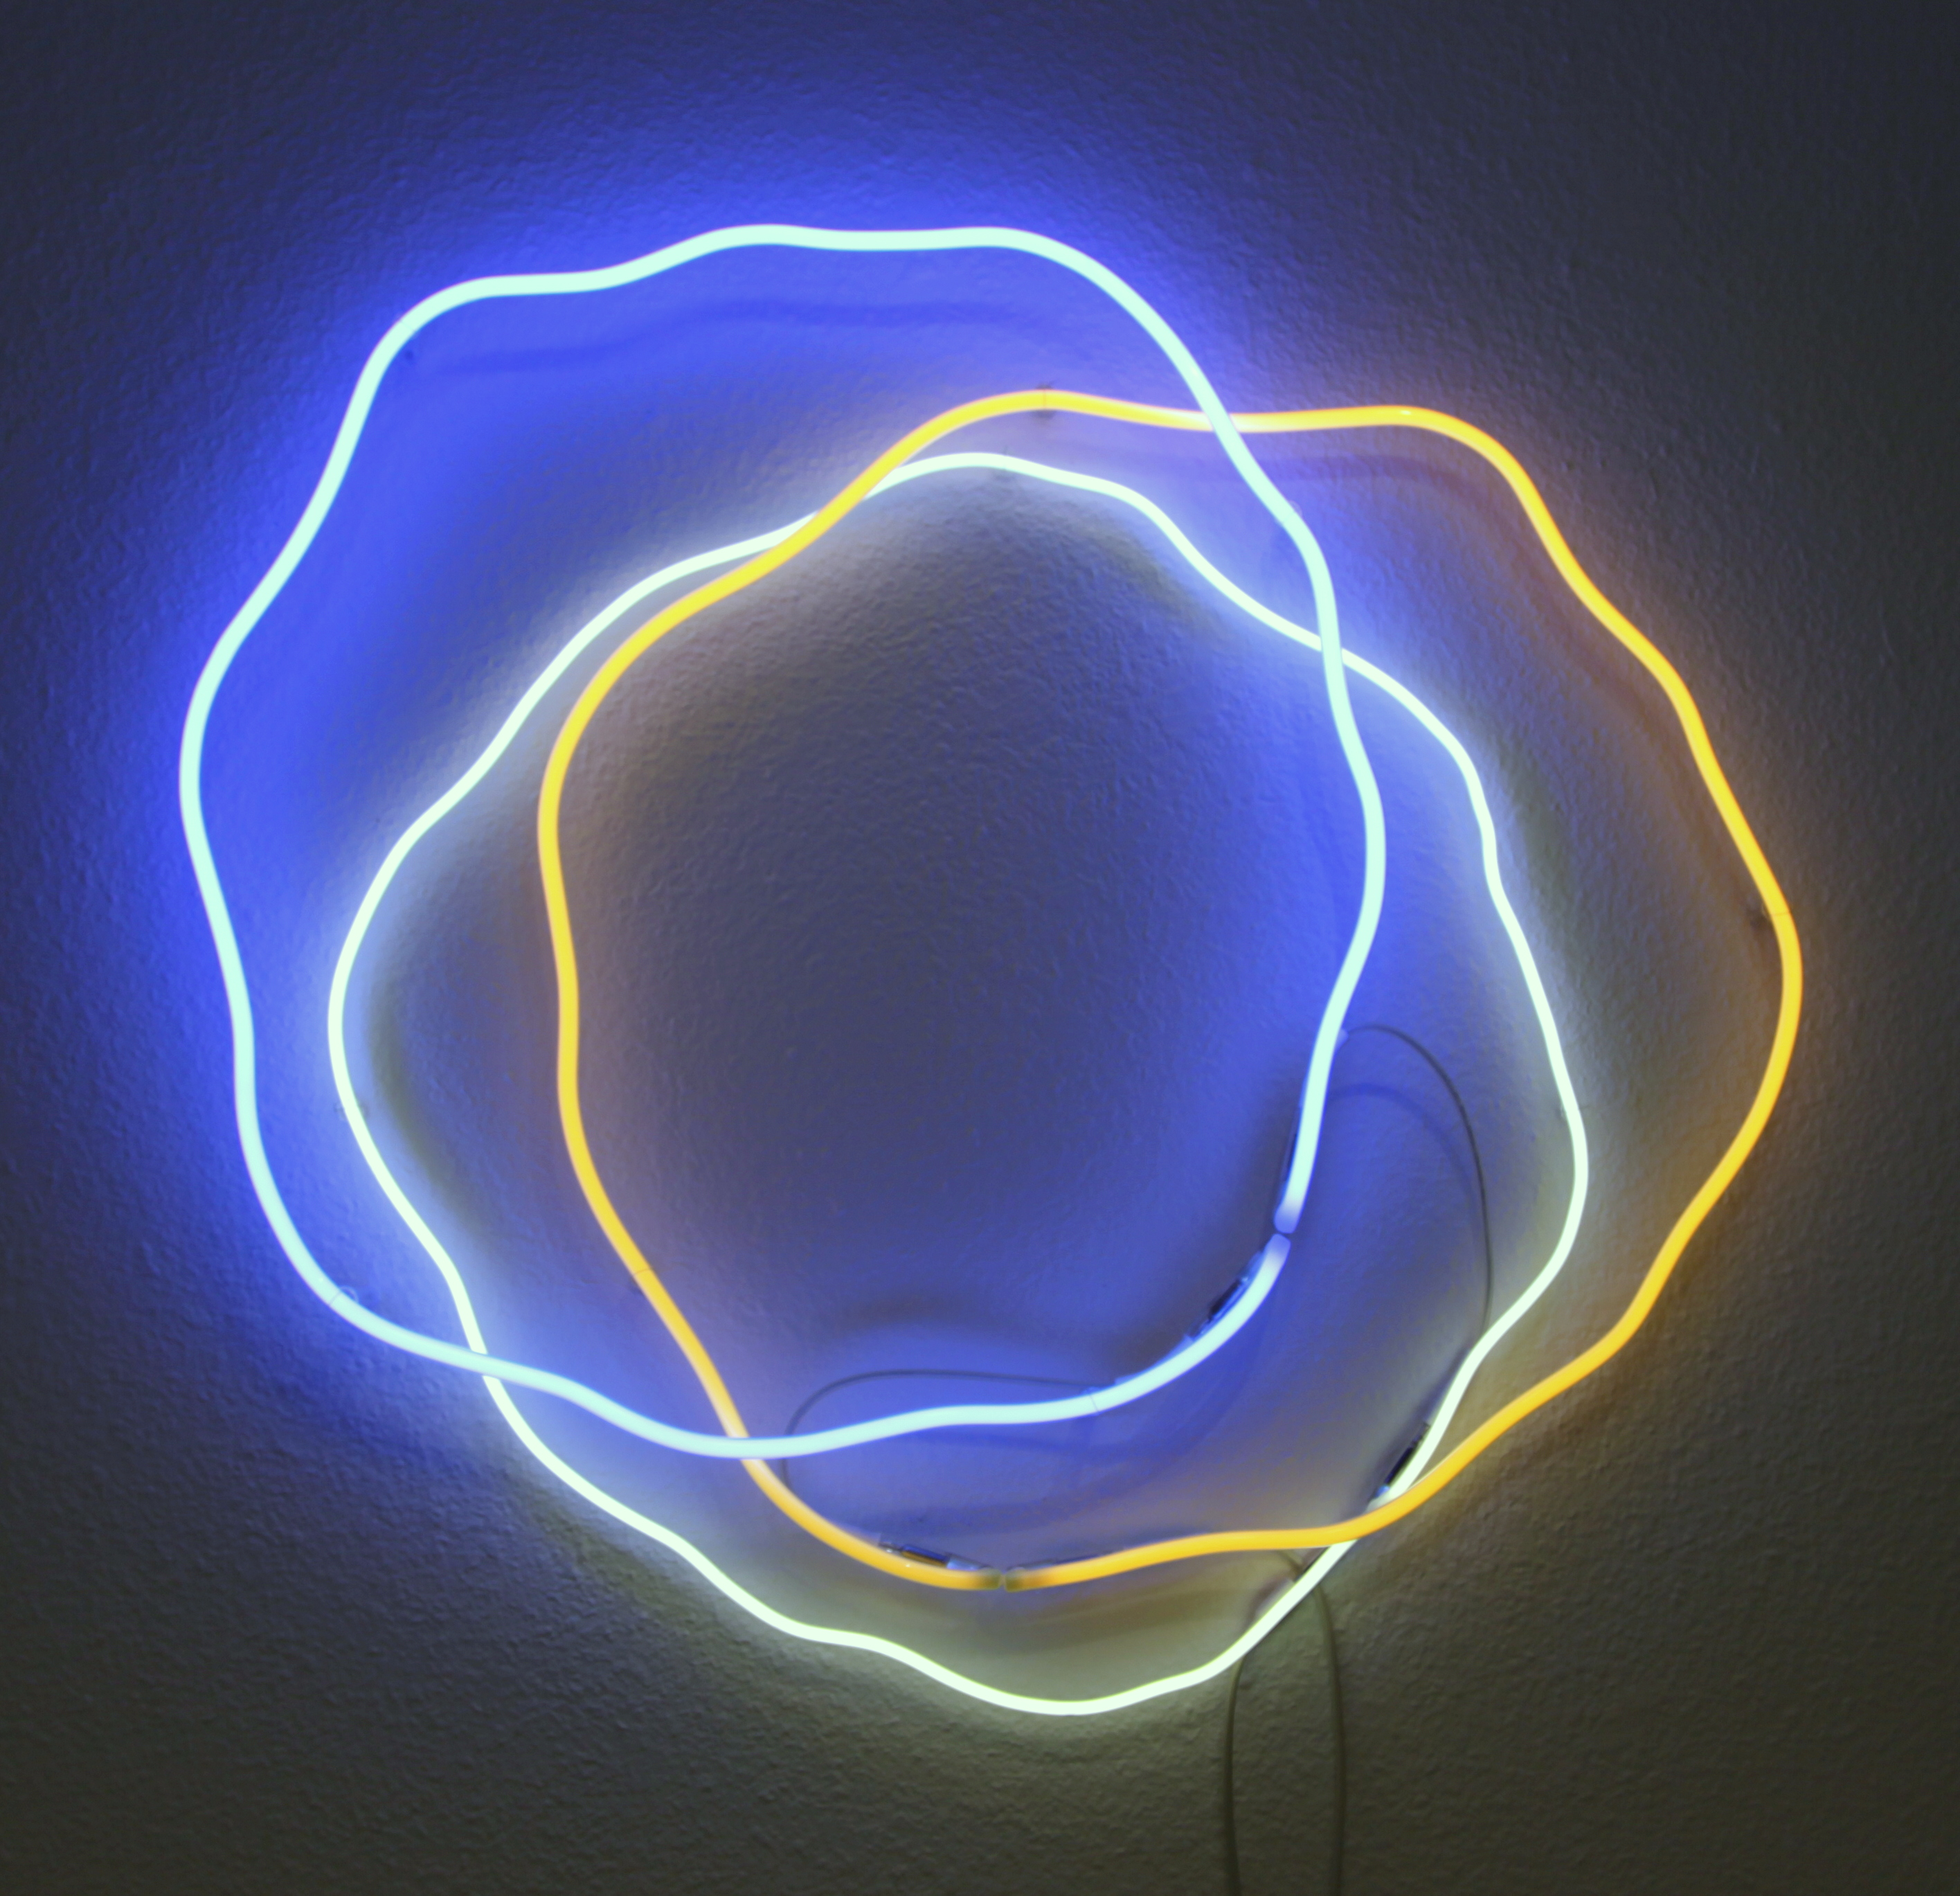 Oniris galerie d 39 art contemporain a rennes bienvenue for Neon artiste contemporain